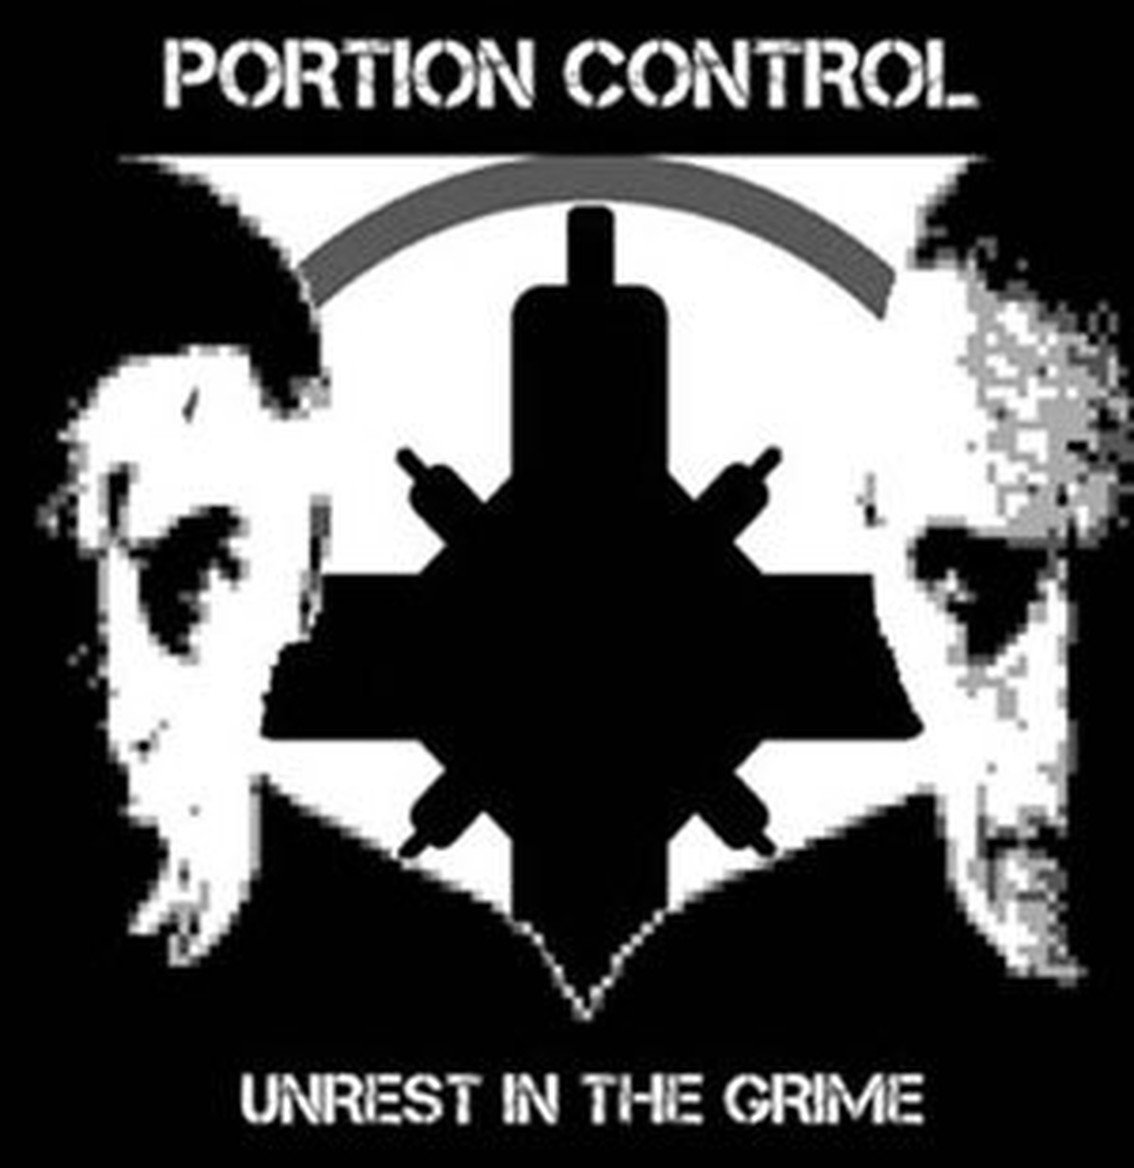 Portion Control outtakes and demos united on vinyl/CD 'Unrest in the grime'